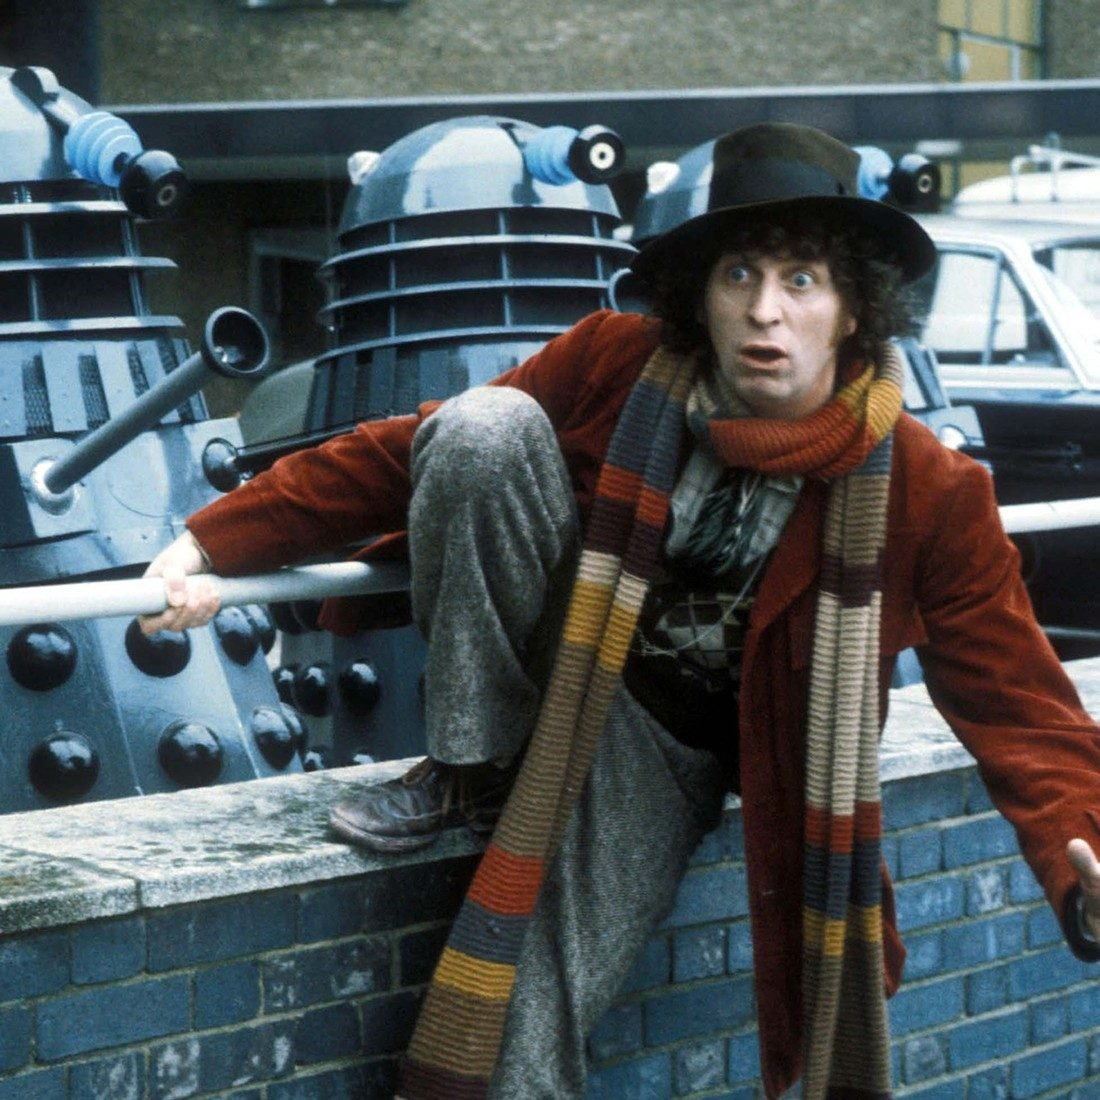 Classic Doctor Who on BritBox - Tom Baker as The Doctor with Daleks